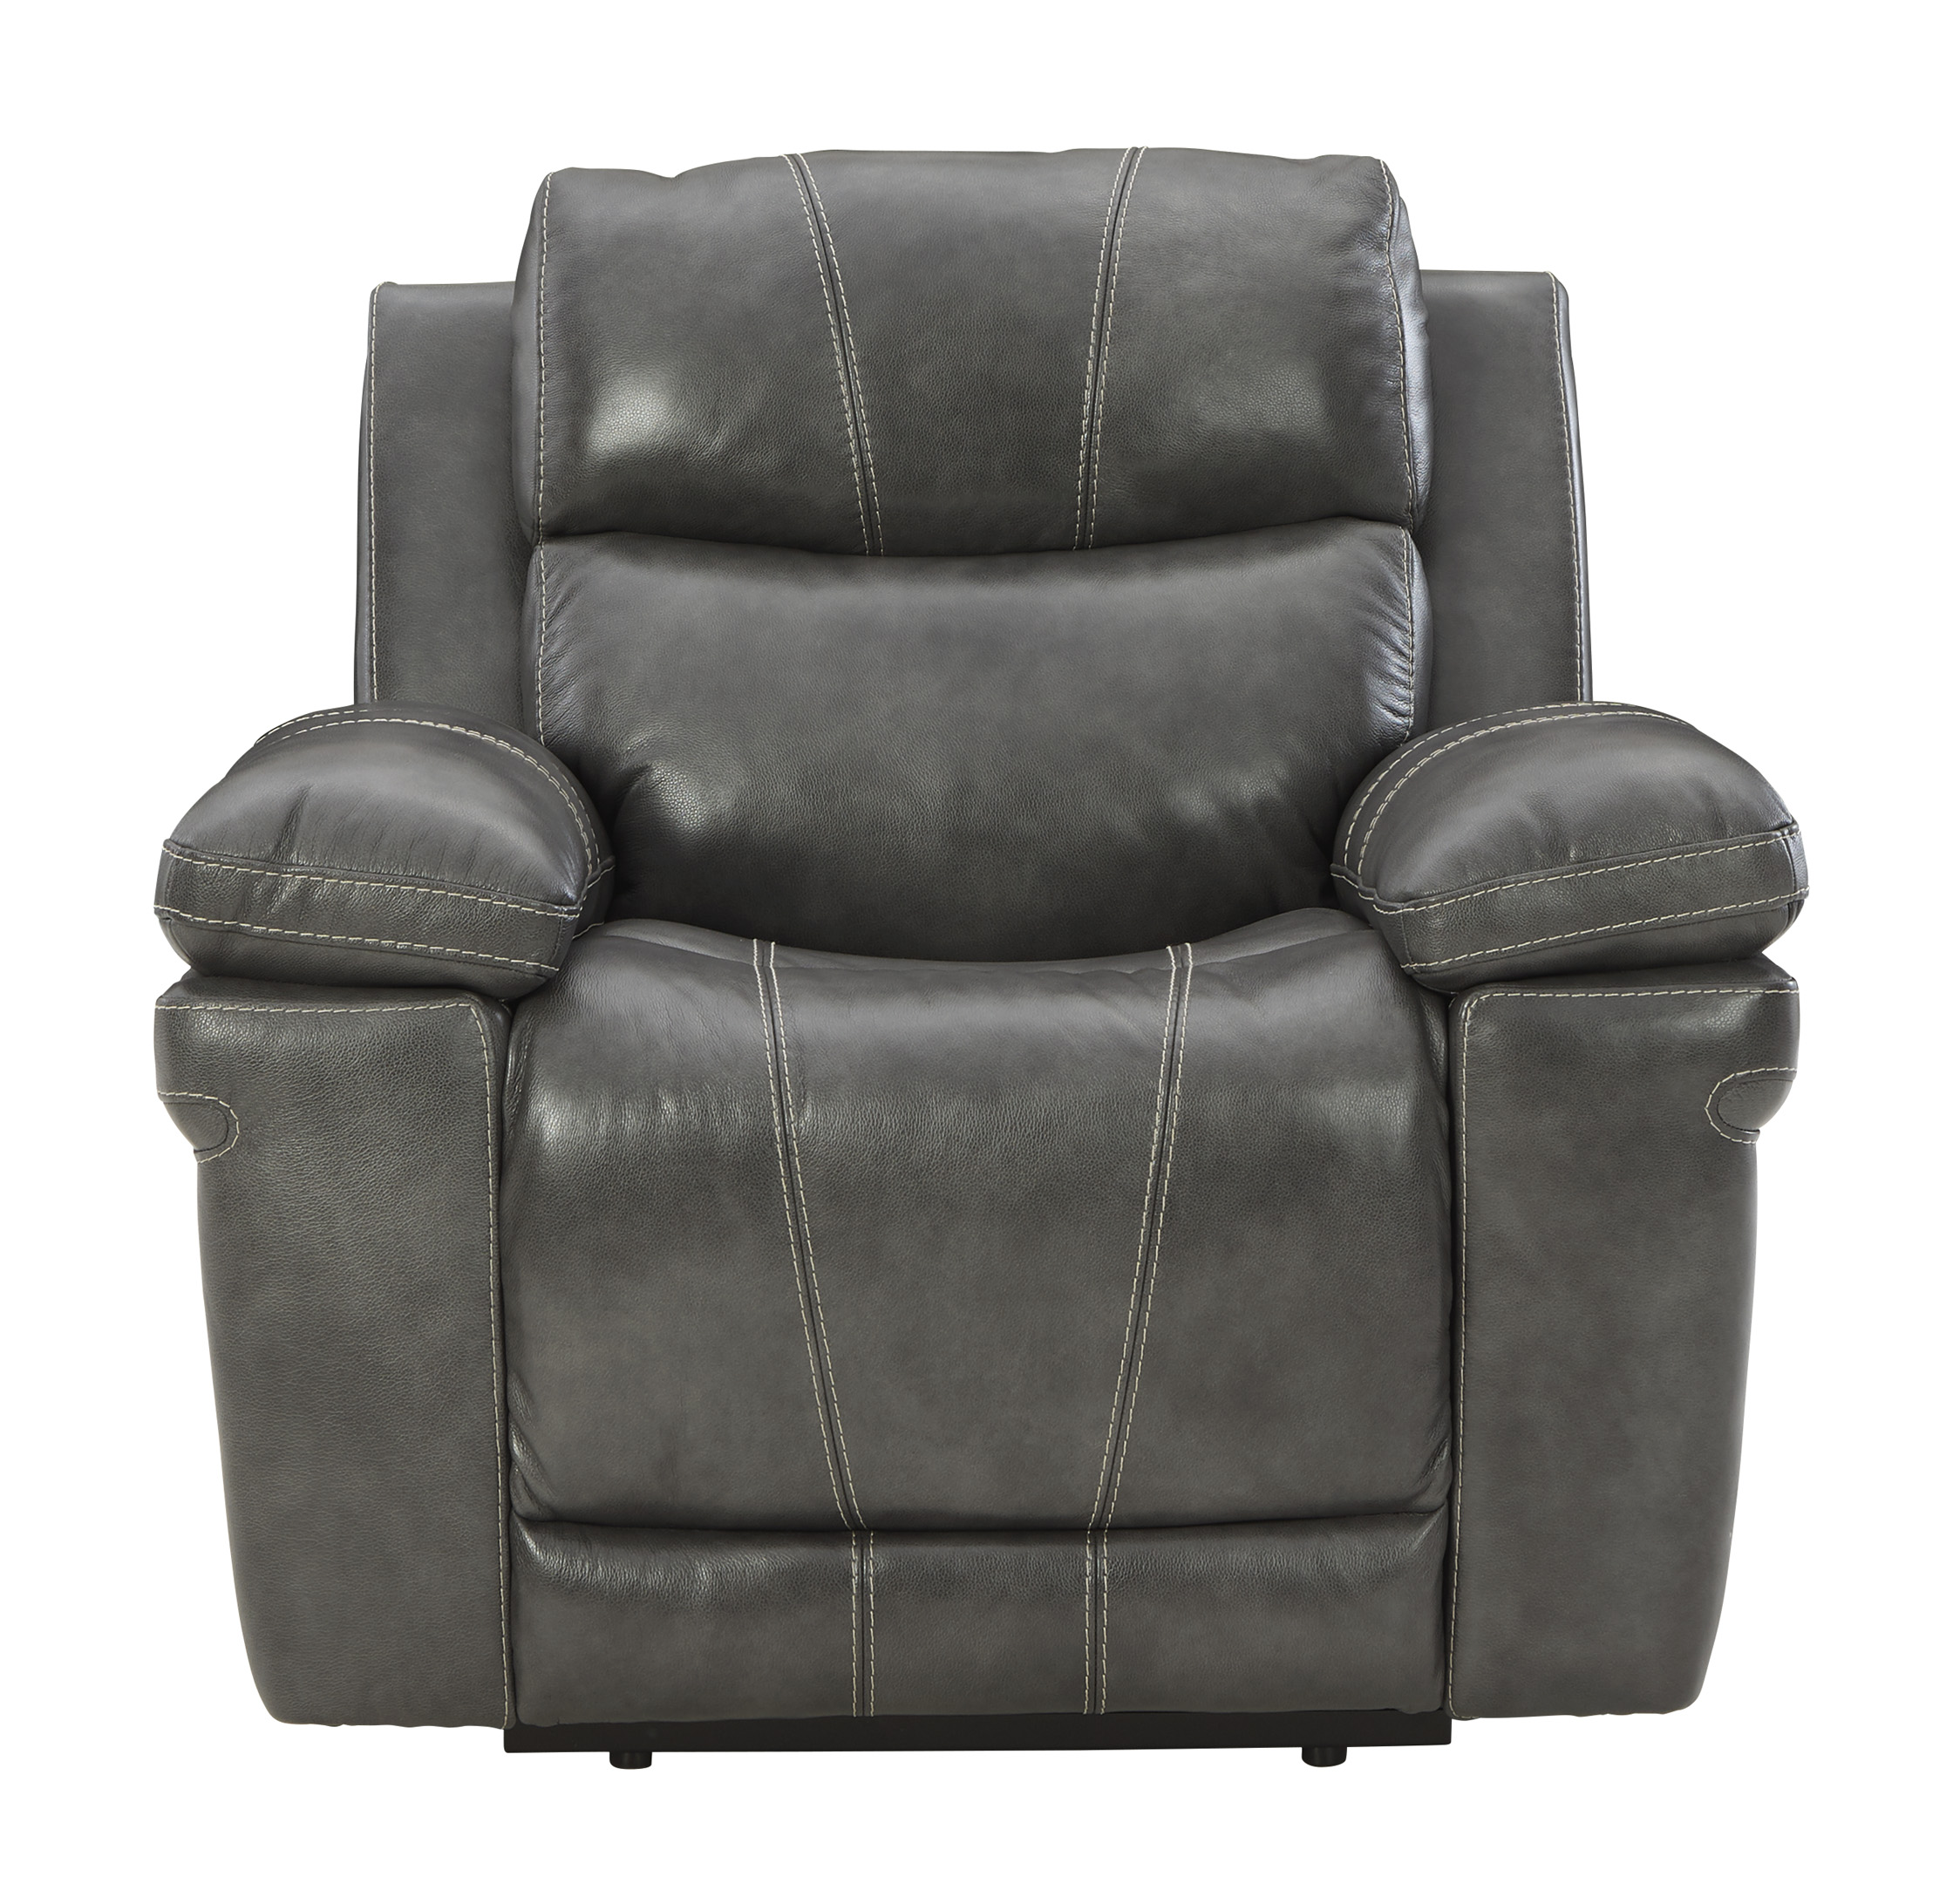 Edmar Power Recliner with Power Headrest by Signature Design by Ashley at Lynn's Furniture & Mattress